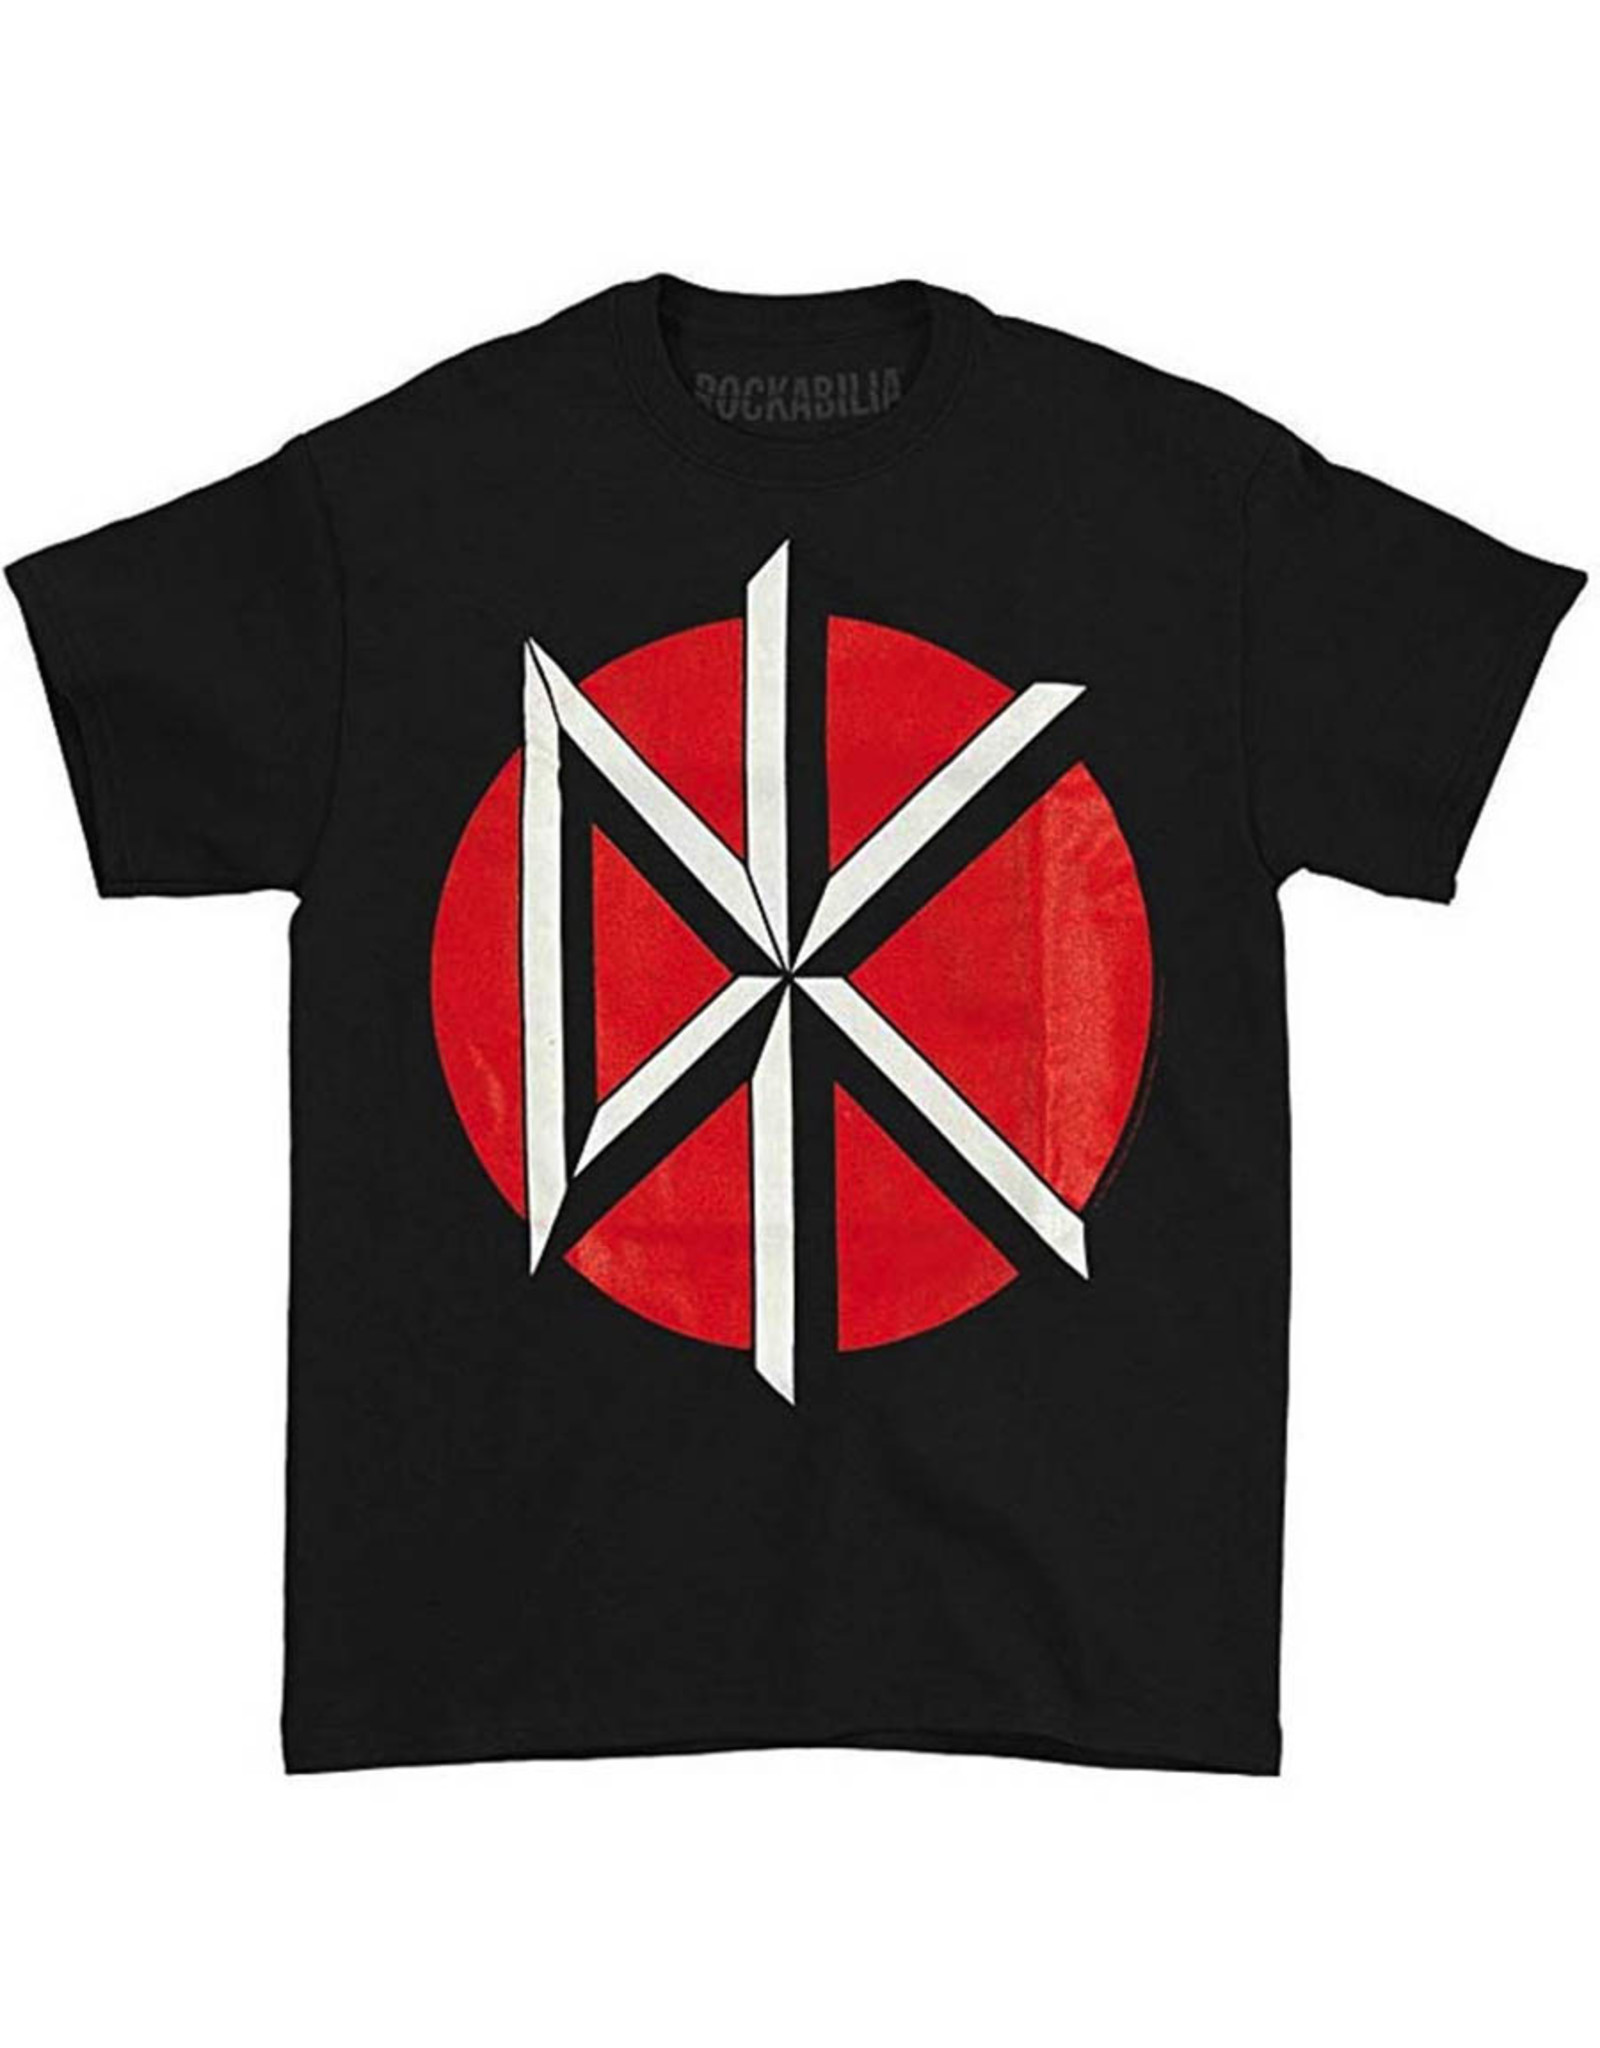 Star 500 Concert Series On Hollywood Tee Dead Kennedys Logo S/S (Black)